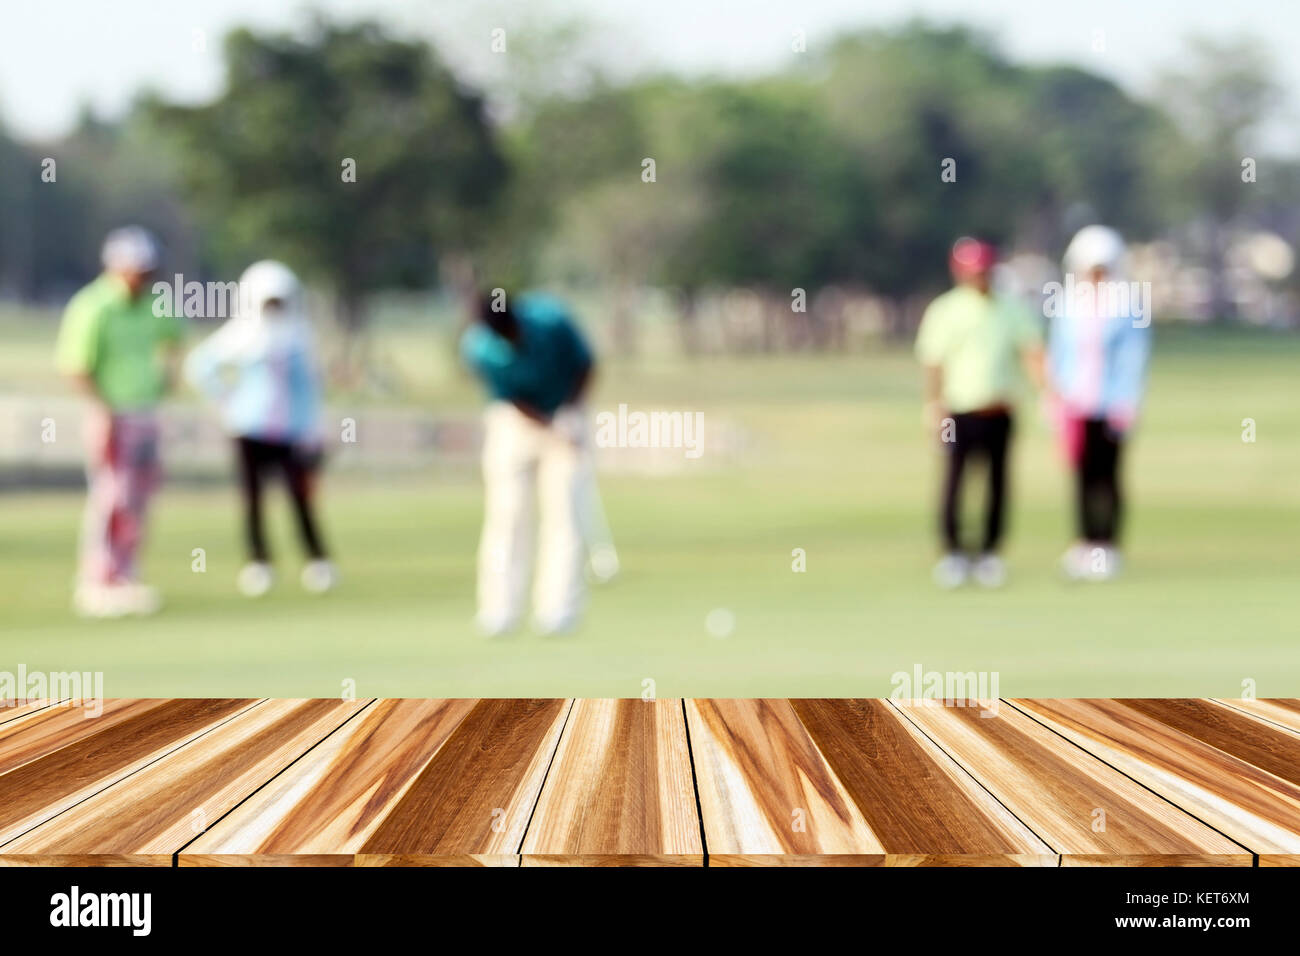 perspective wood and blurred golfers hit sweeping and keep golf course in the summer for relax time - Stock Image